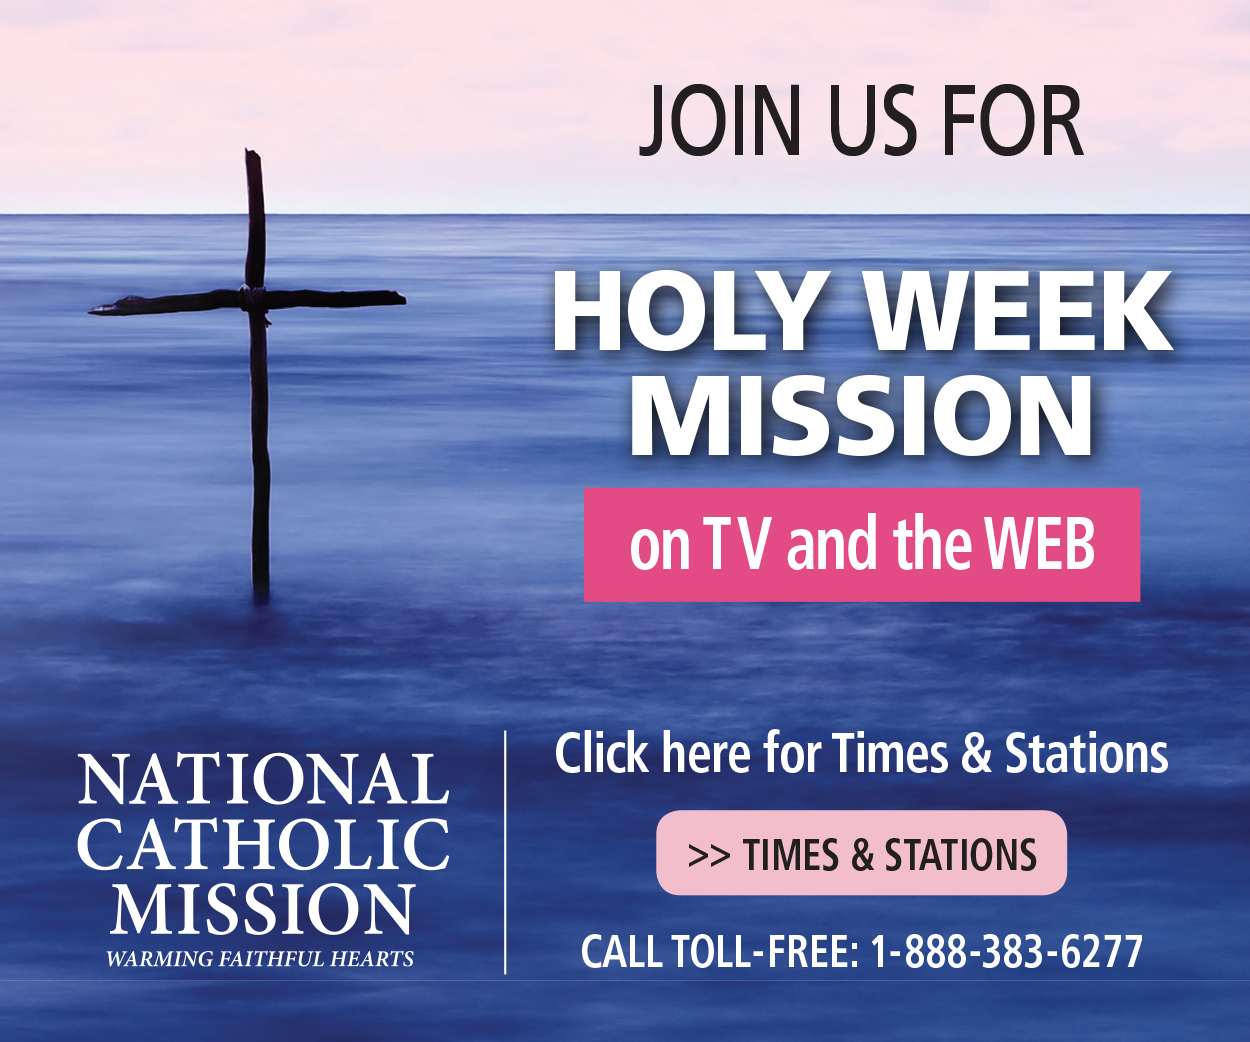 Holy Week Mission - National Catholic Mission